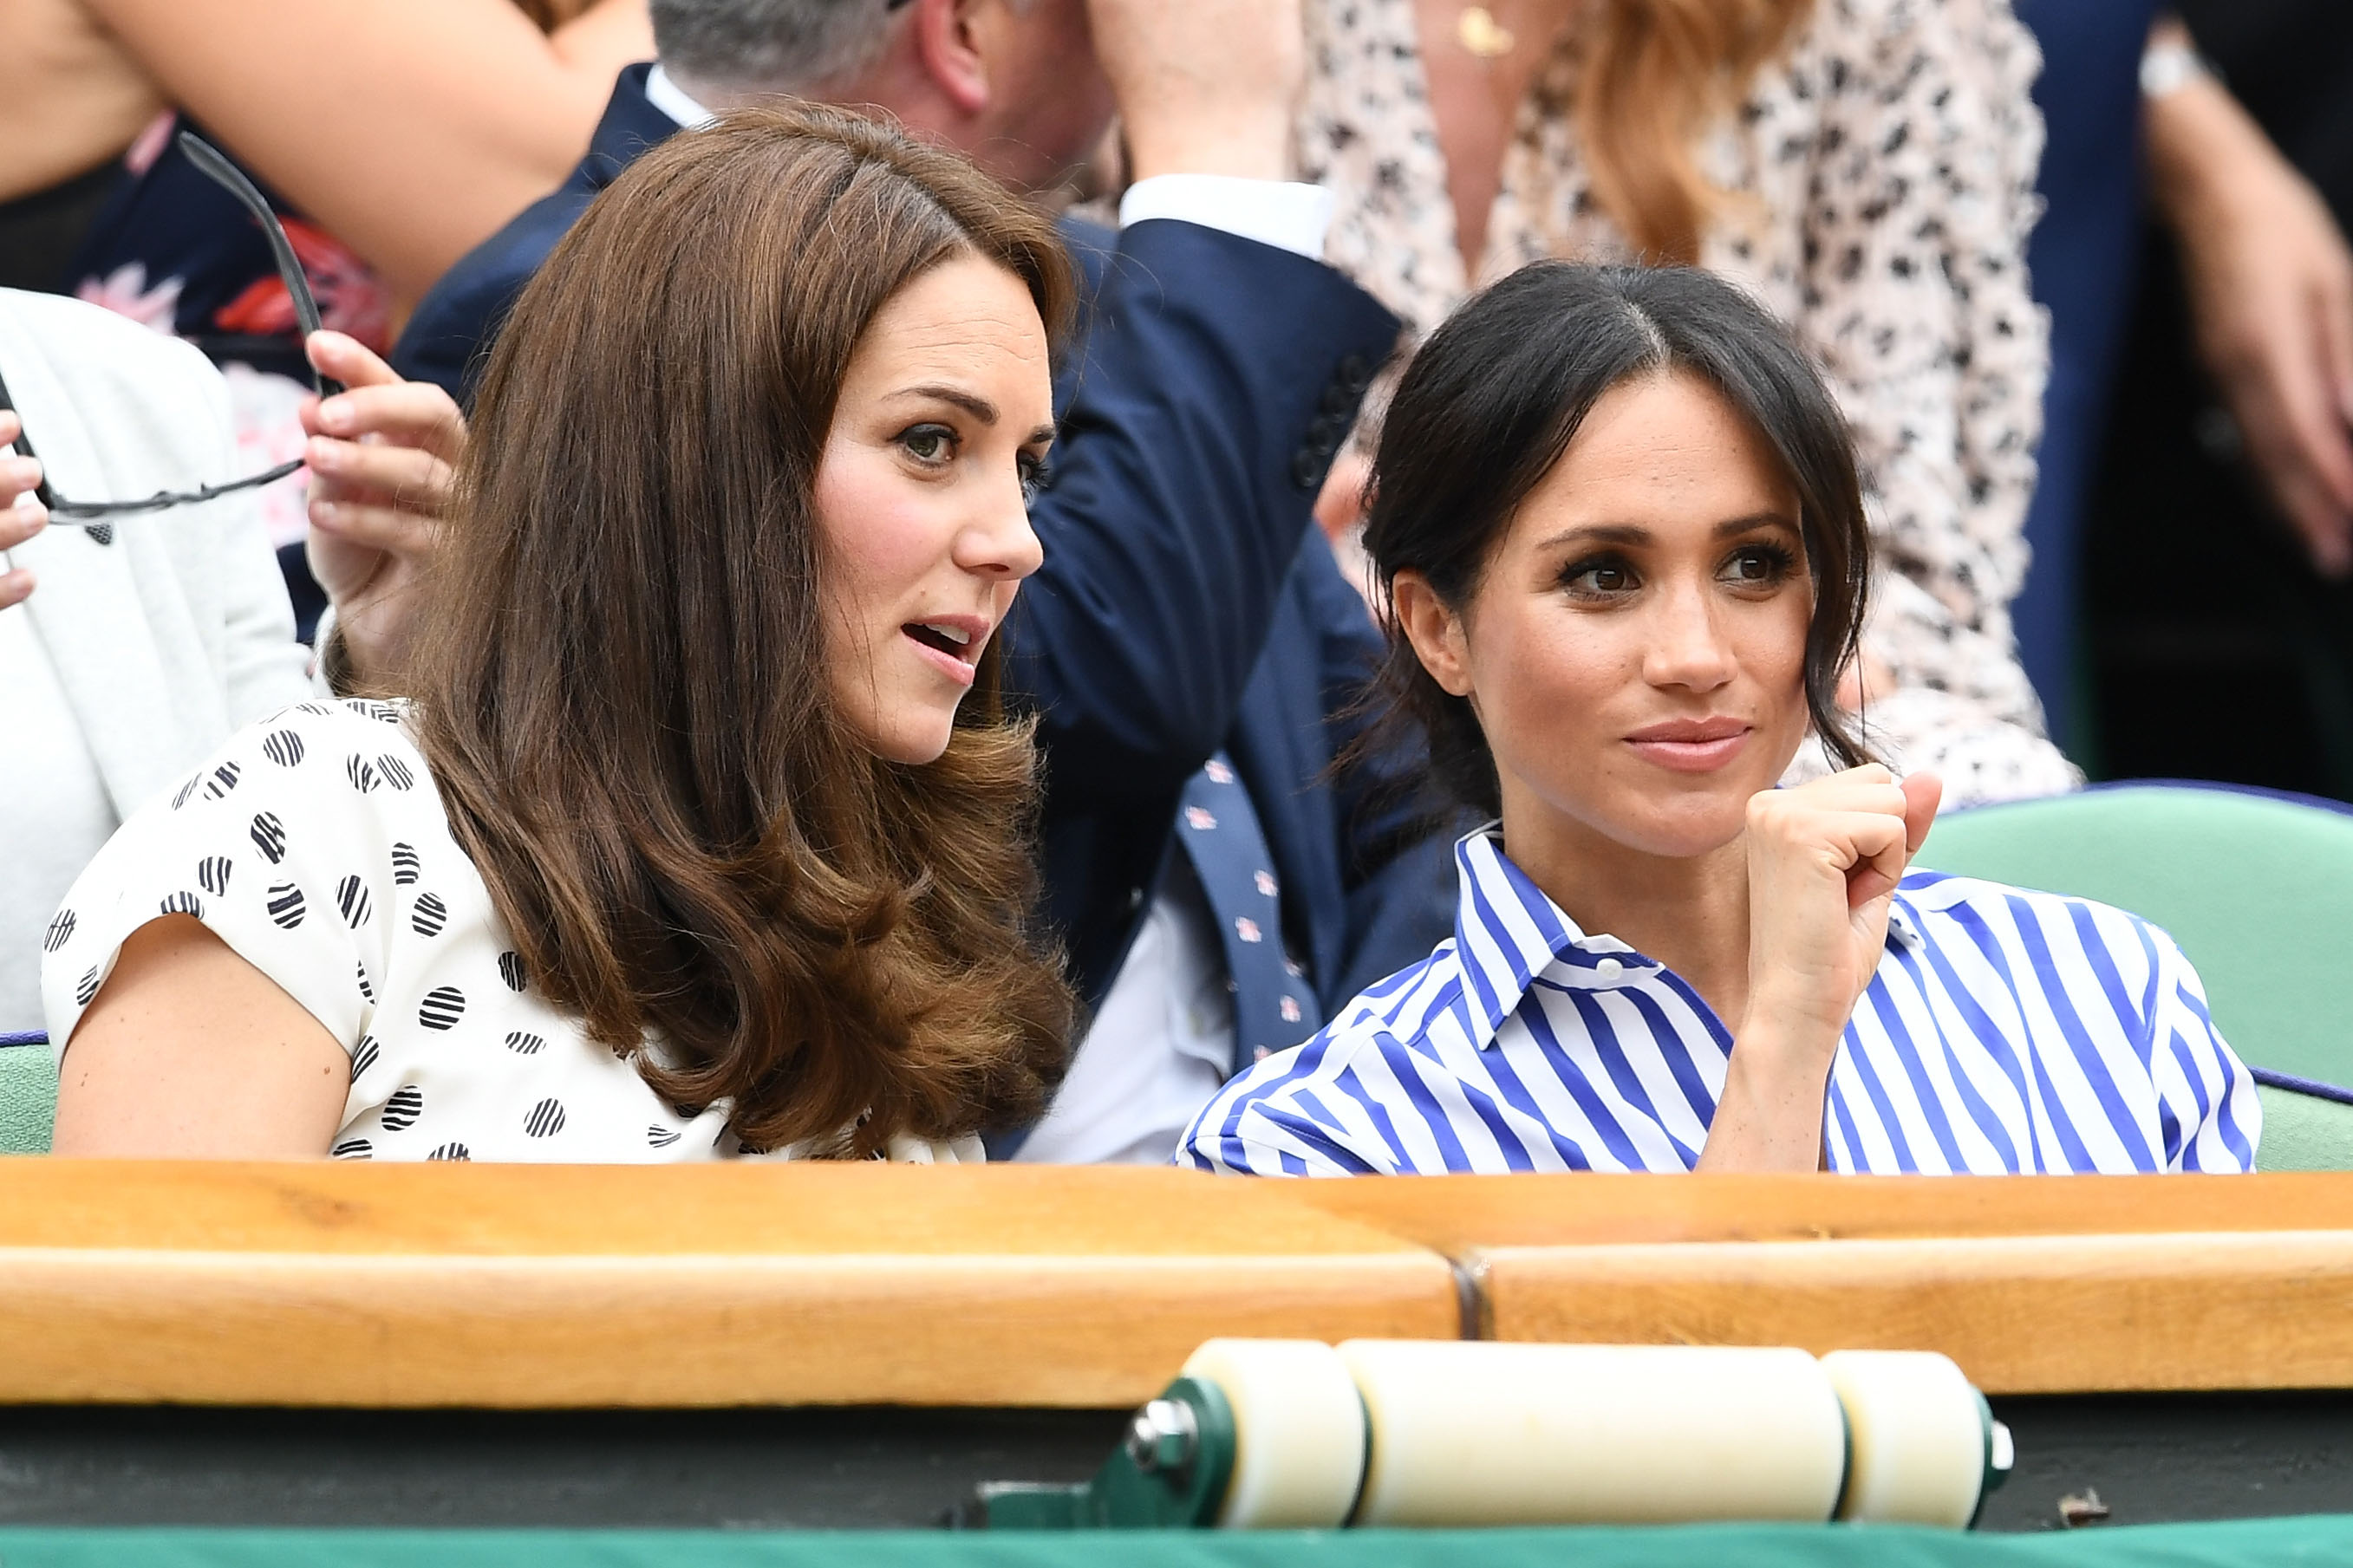 Catherine, Duchess of Cambridge and Meghan, Duchess of Sussex attend day twelve of the Wimbledon Lawn Tennis Championships at All England Lawn Tennis and Croquet Club on July 14 in London, England.